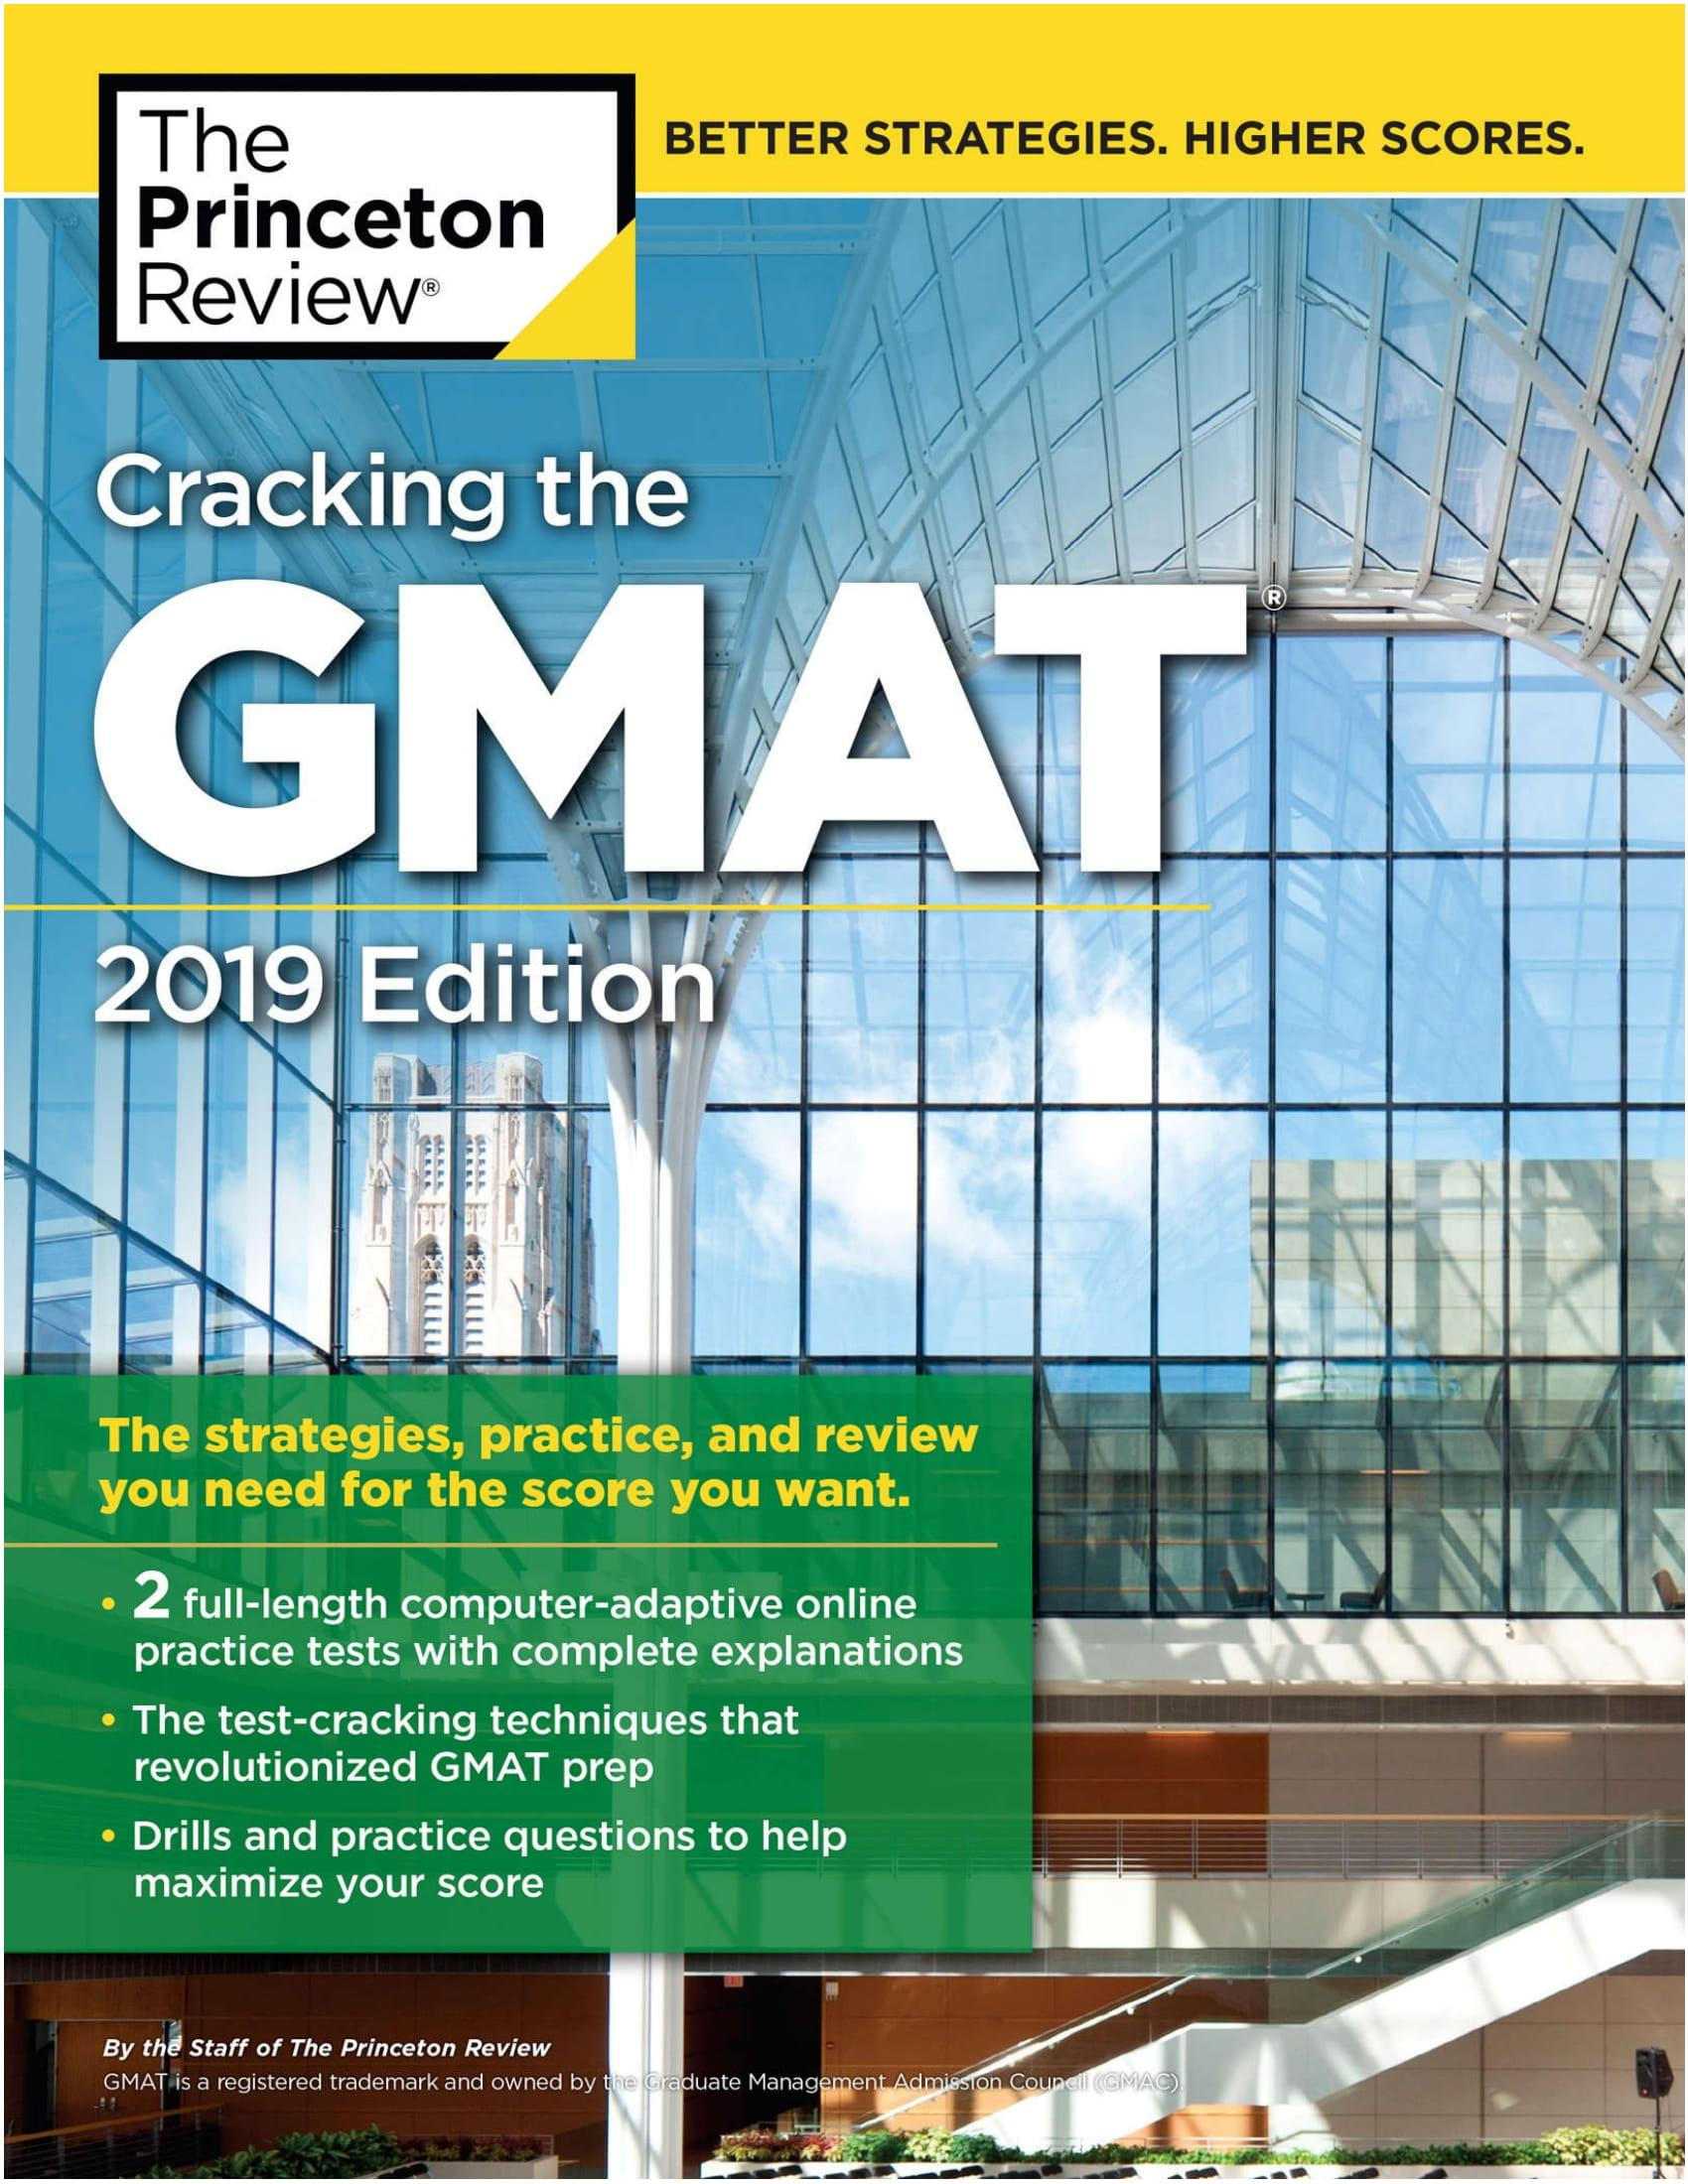 Mua Cracking the GMAT with 2 Computer-Adaptive Practice Tests, 2019 Edition